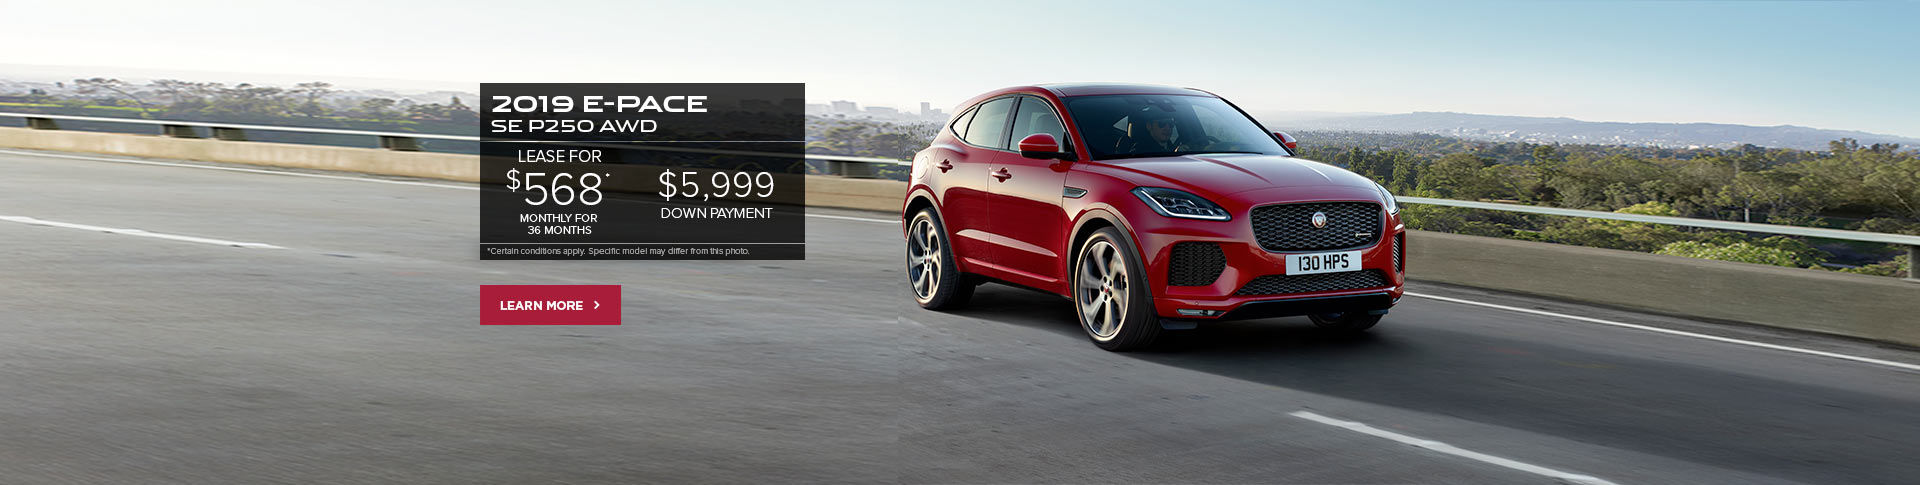 The 2019 E-PACE